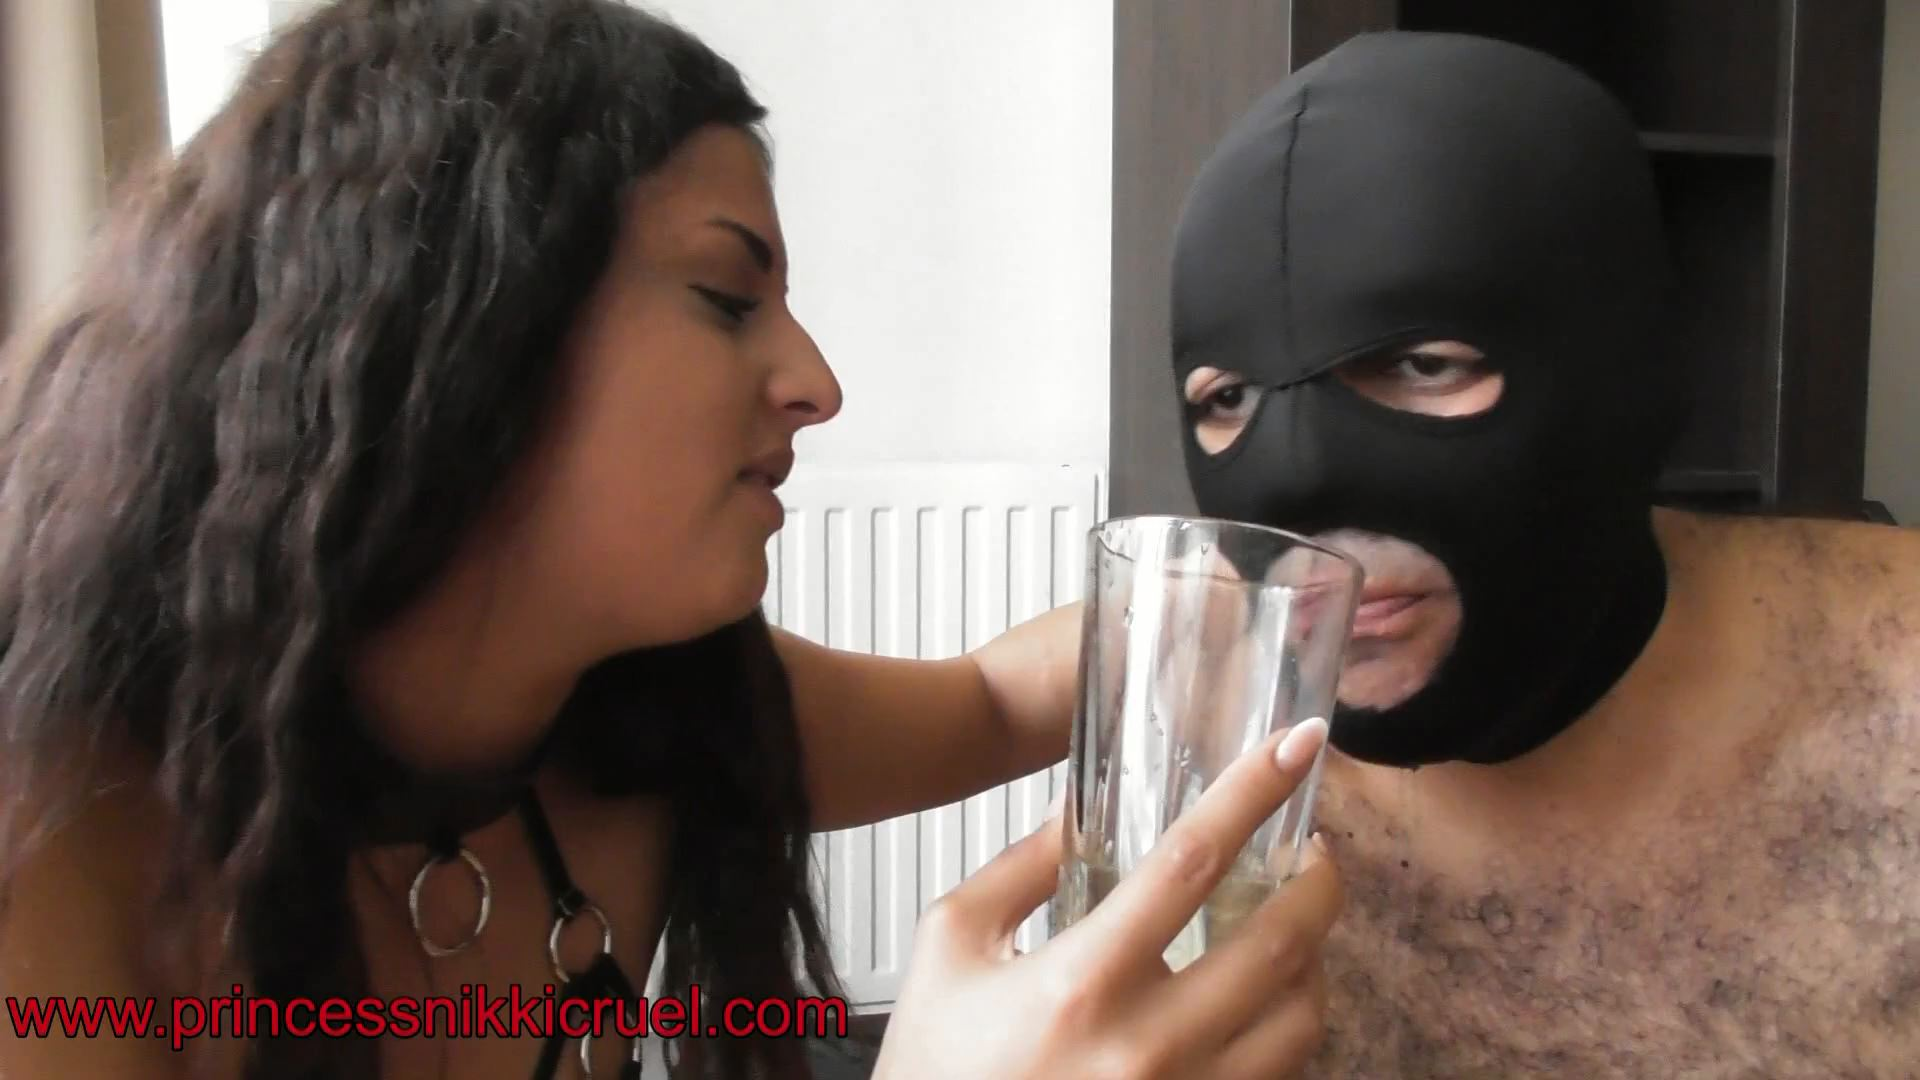 [PRINCESS NIKKI'S EMPIRE] Piss From Me And Coco. Featuring: Nikki Cruel [FULL HD][1080p][MP4]